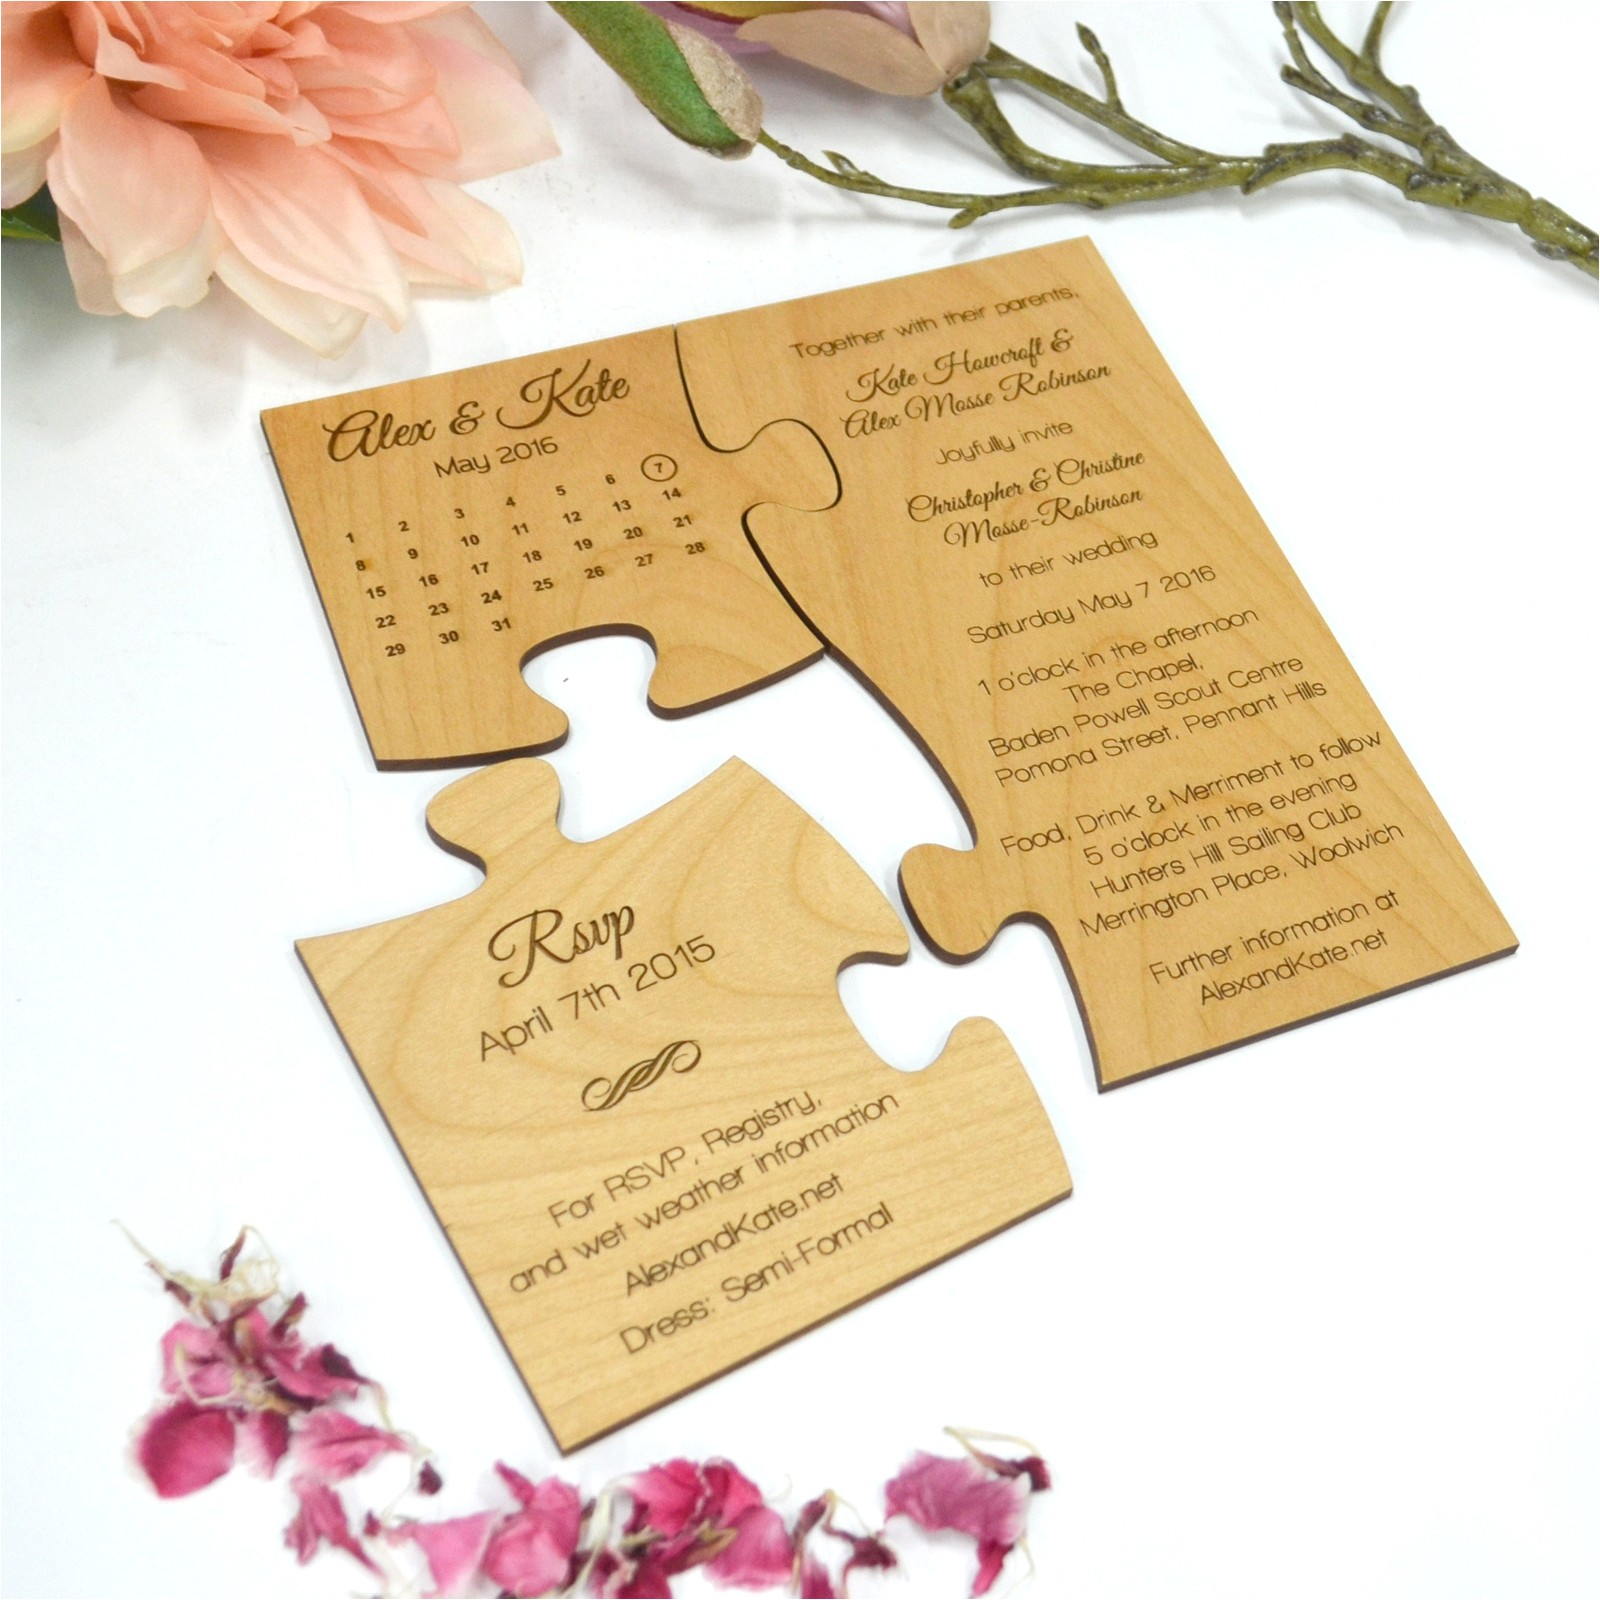 limited edition engraved wooden puzzle invitation and save the date se